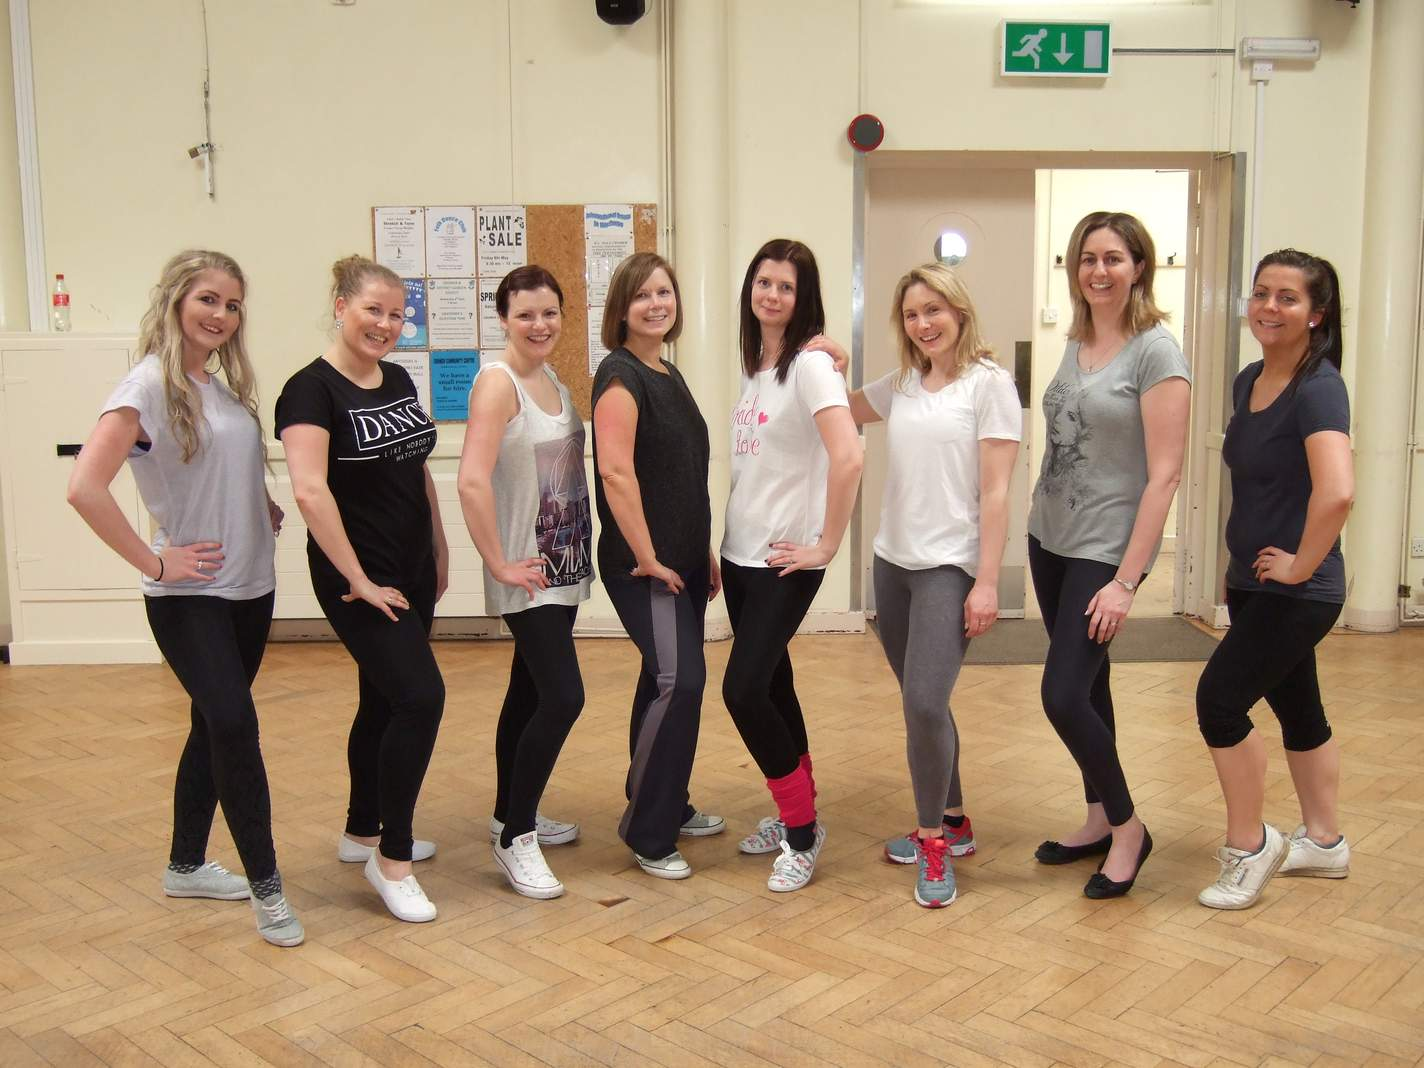 Dance fitness class for adults in Sheringham and Cromer, North Norfolk